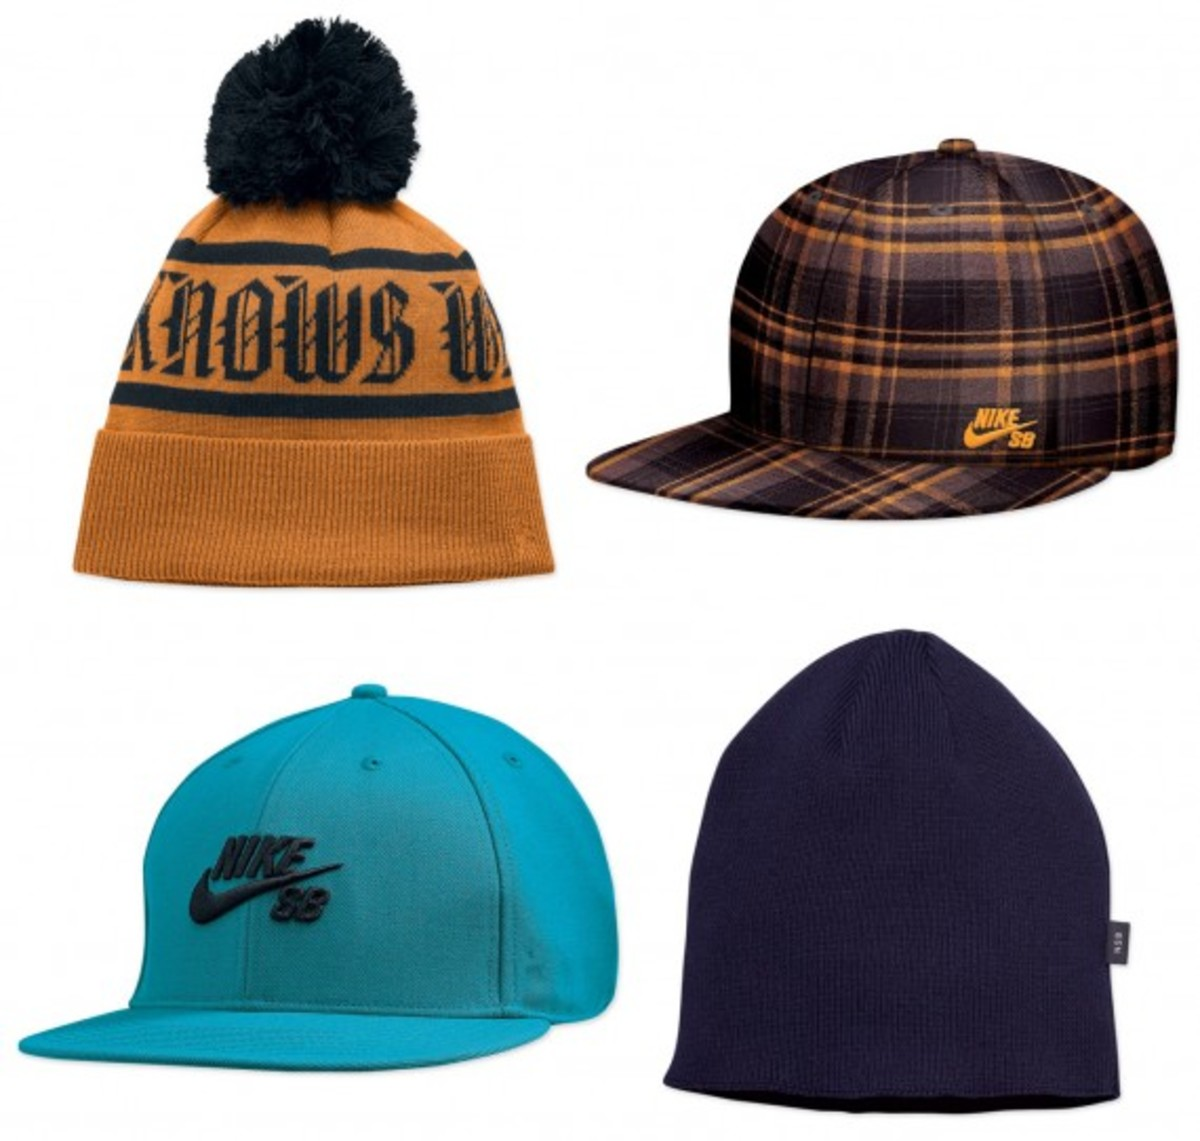 nike-sb-fall-holiday-2009-accessories-caps-beanies-011